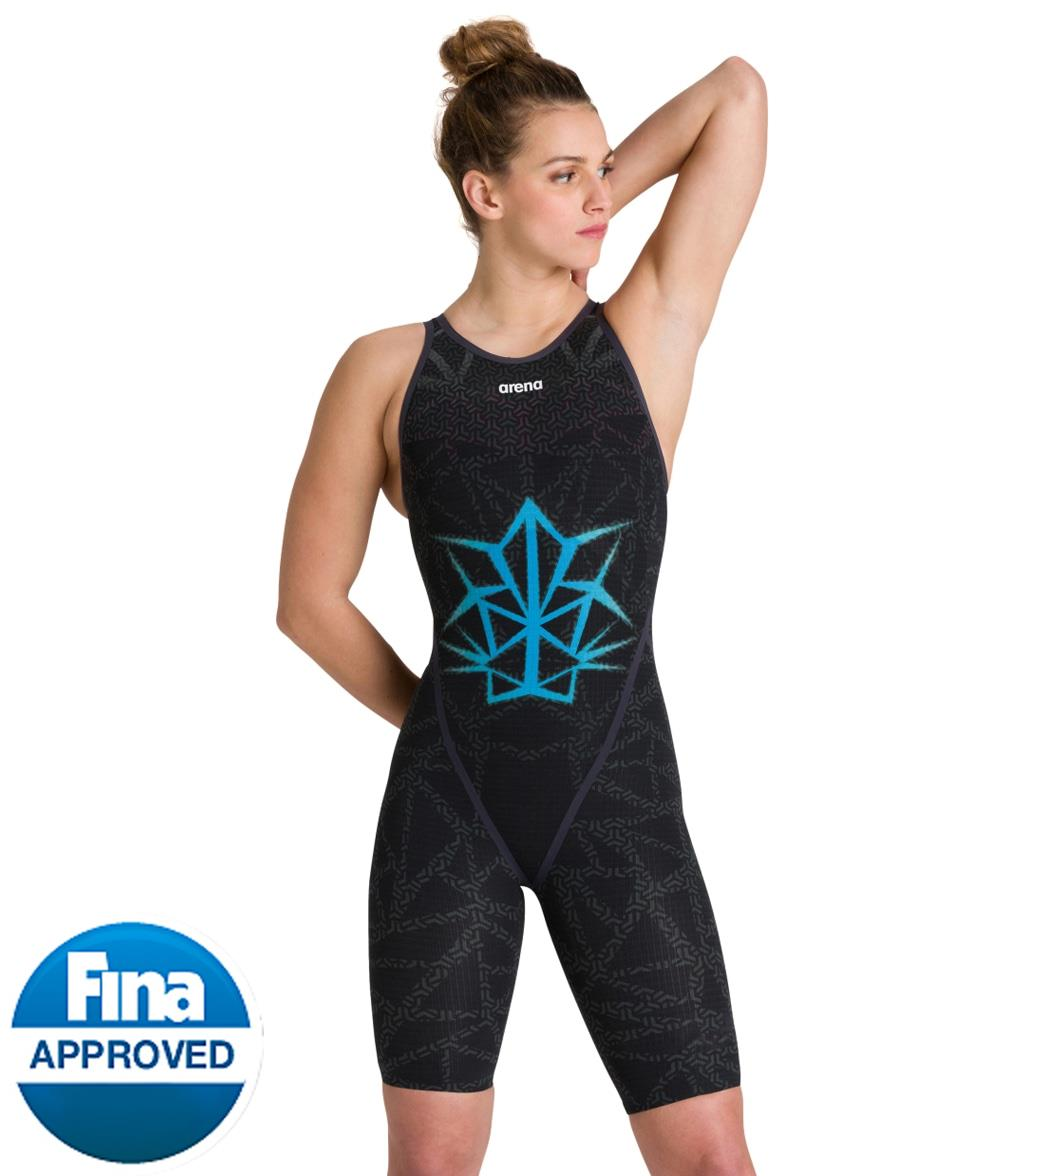 Arena Women's Limited Edition Bishamon Warrior Powerskin Carbon Glide Open Back Tech Suit Swimsuit